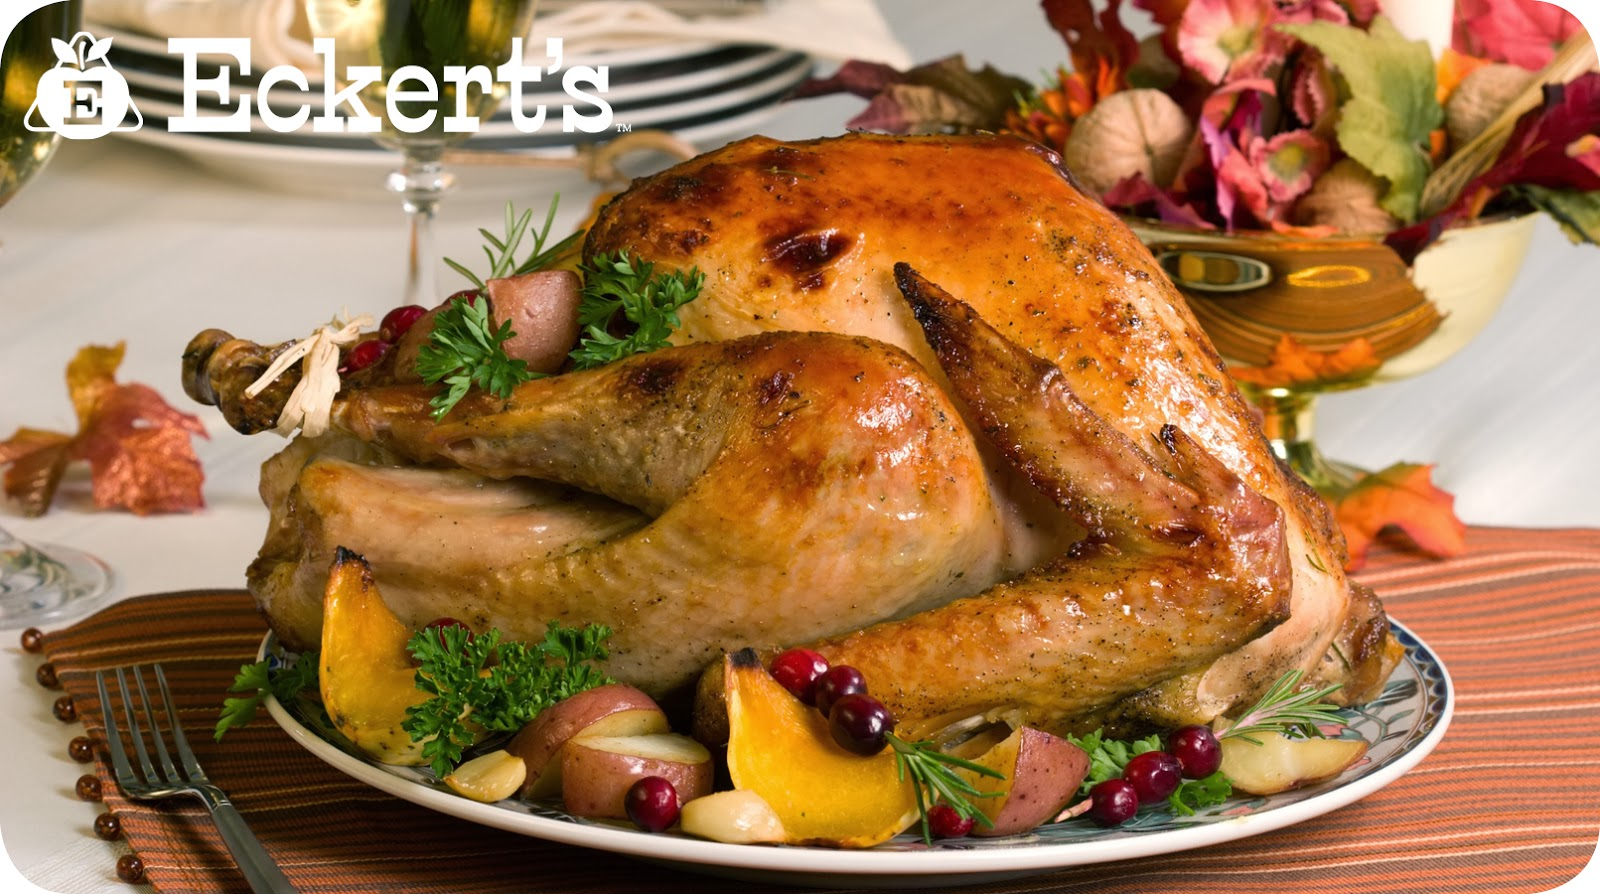 Eckert's Country Store & Farms: My Favorite Turkey Brine